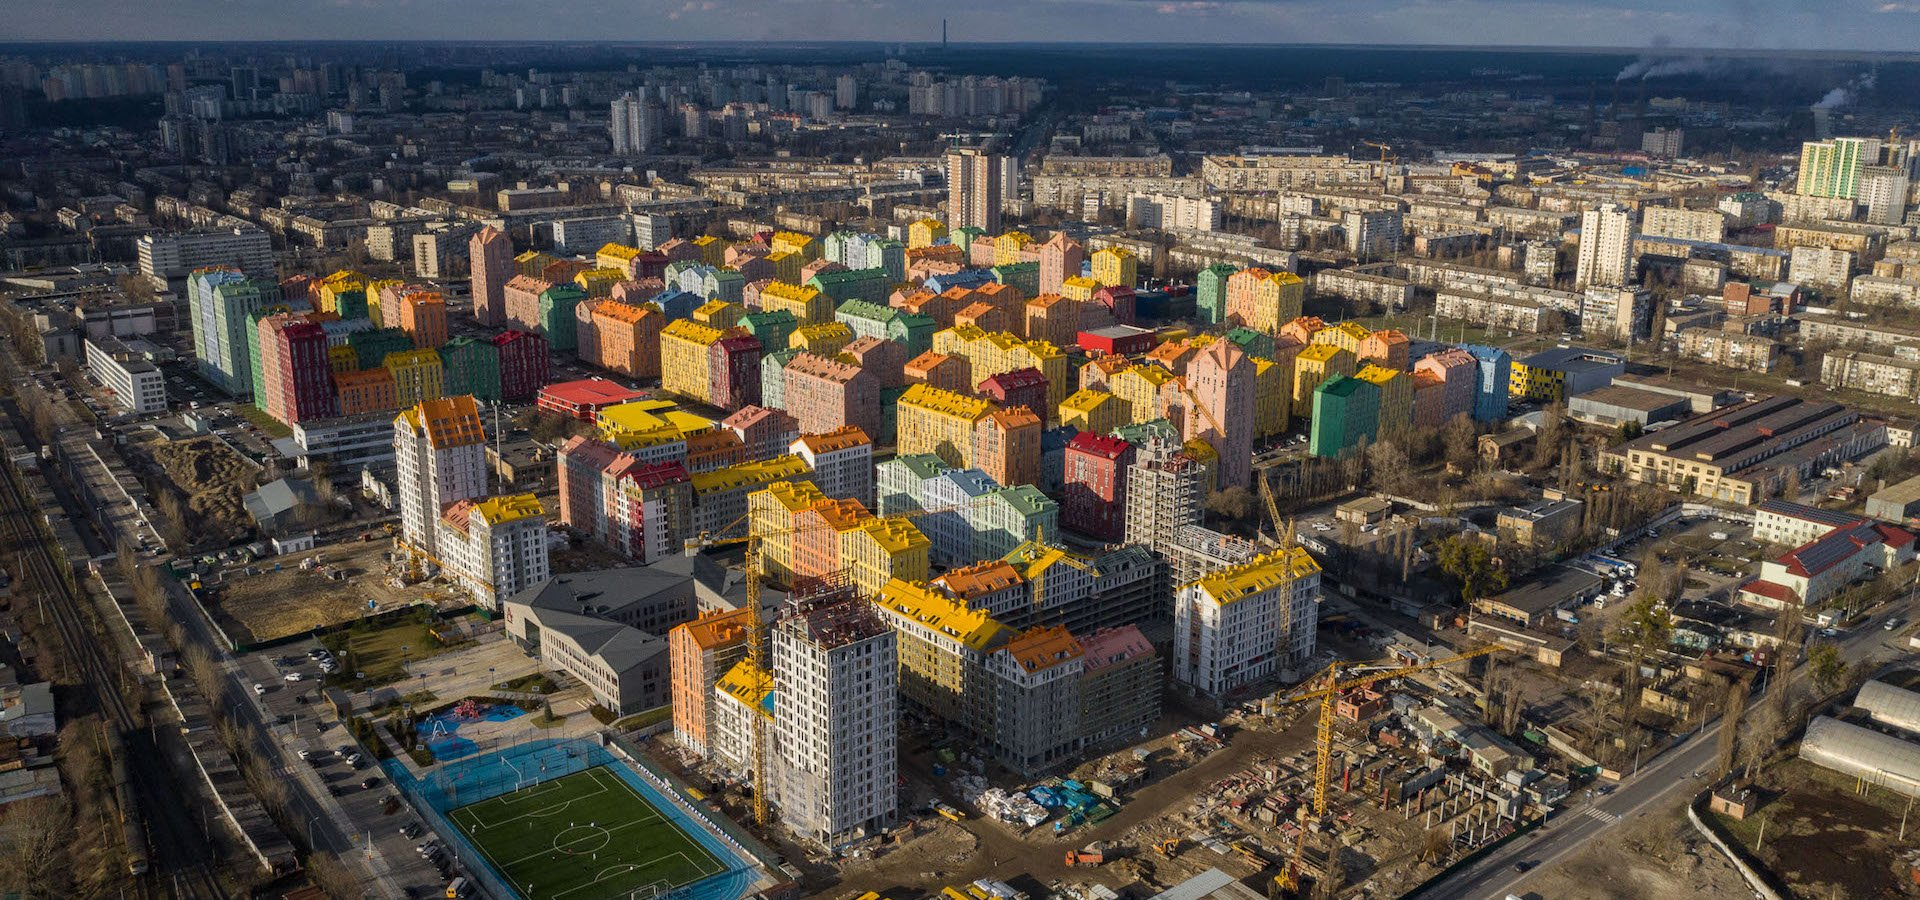 A nation's tensions are laid bare in Kyiv's colourful city-within-a-city. Welcome to Comfort Town